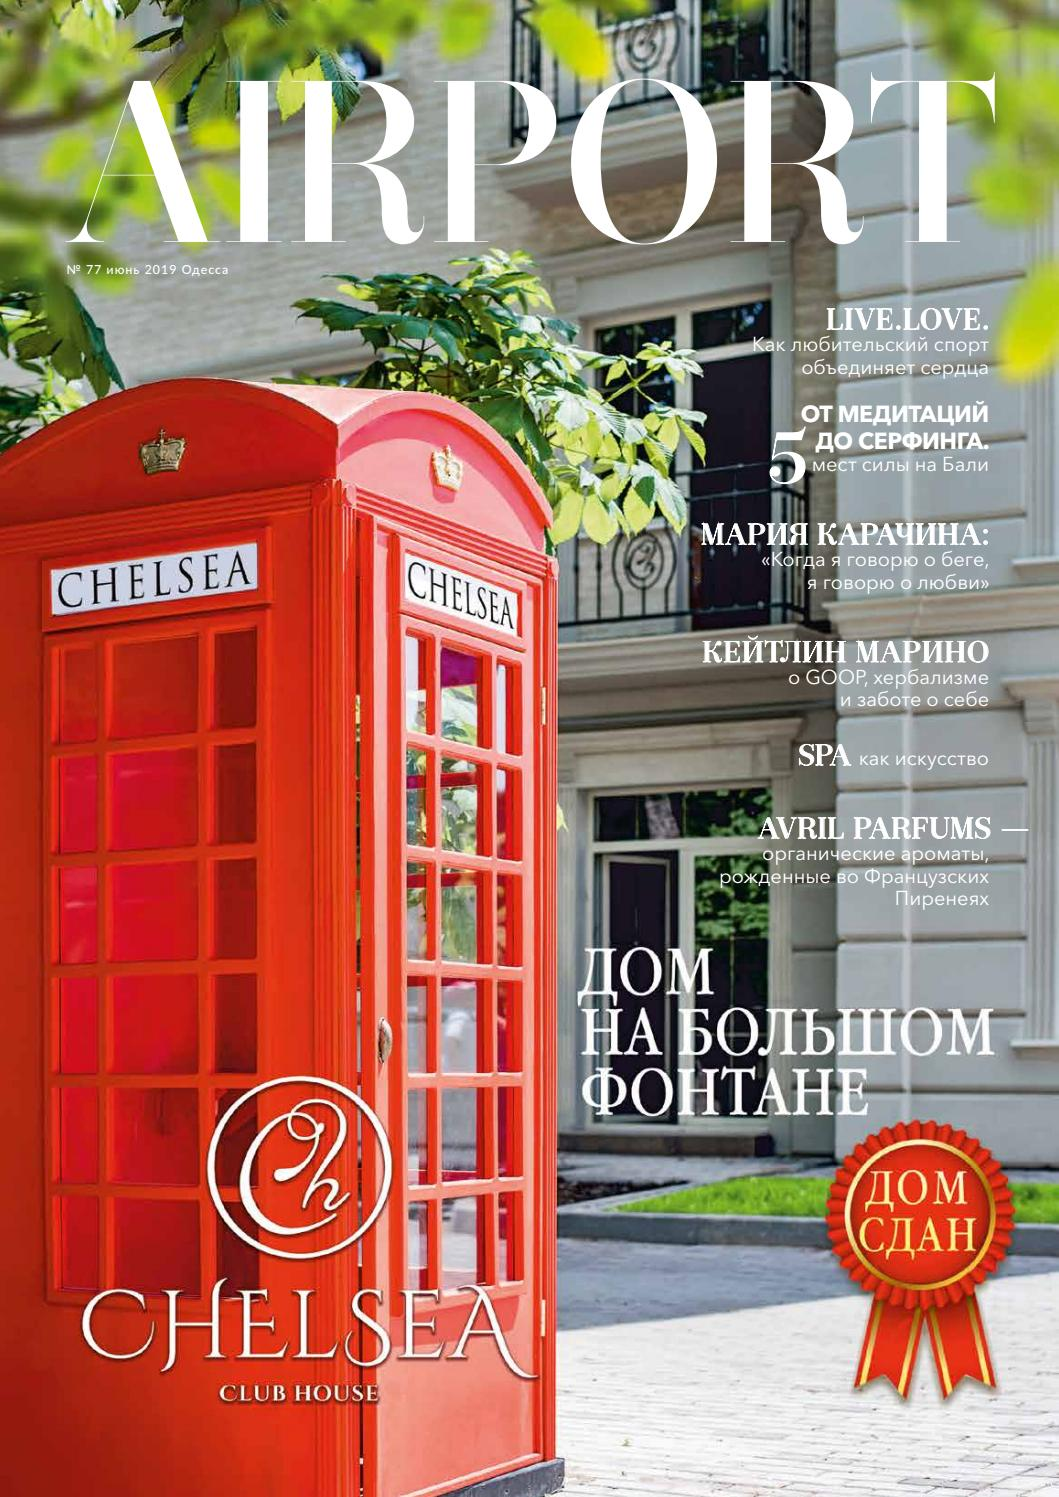 Salon Jardin 2 Places Nouveau June 19 by Airport Magazine Odessa issuu Of 21 Frais Salon Jardin 2 Places